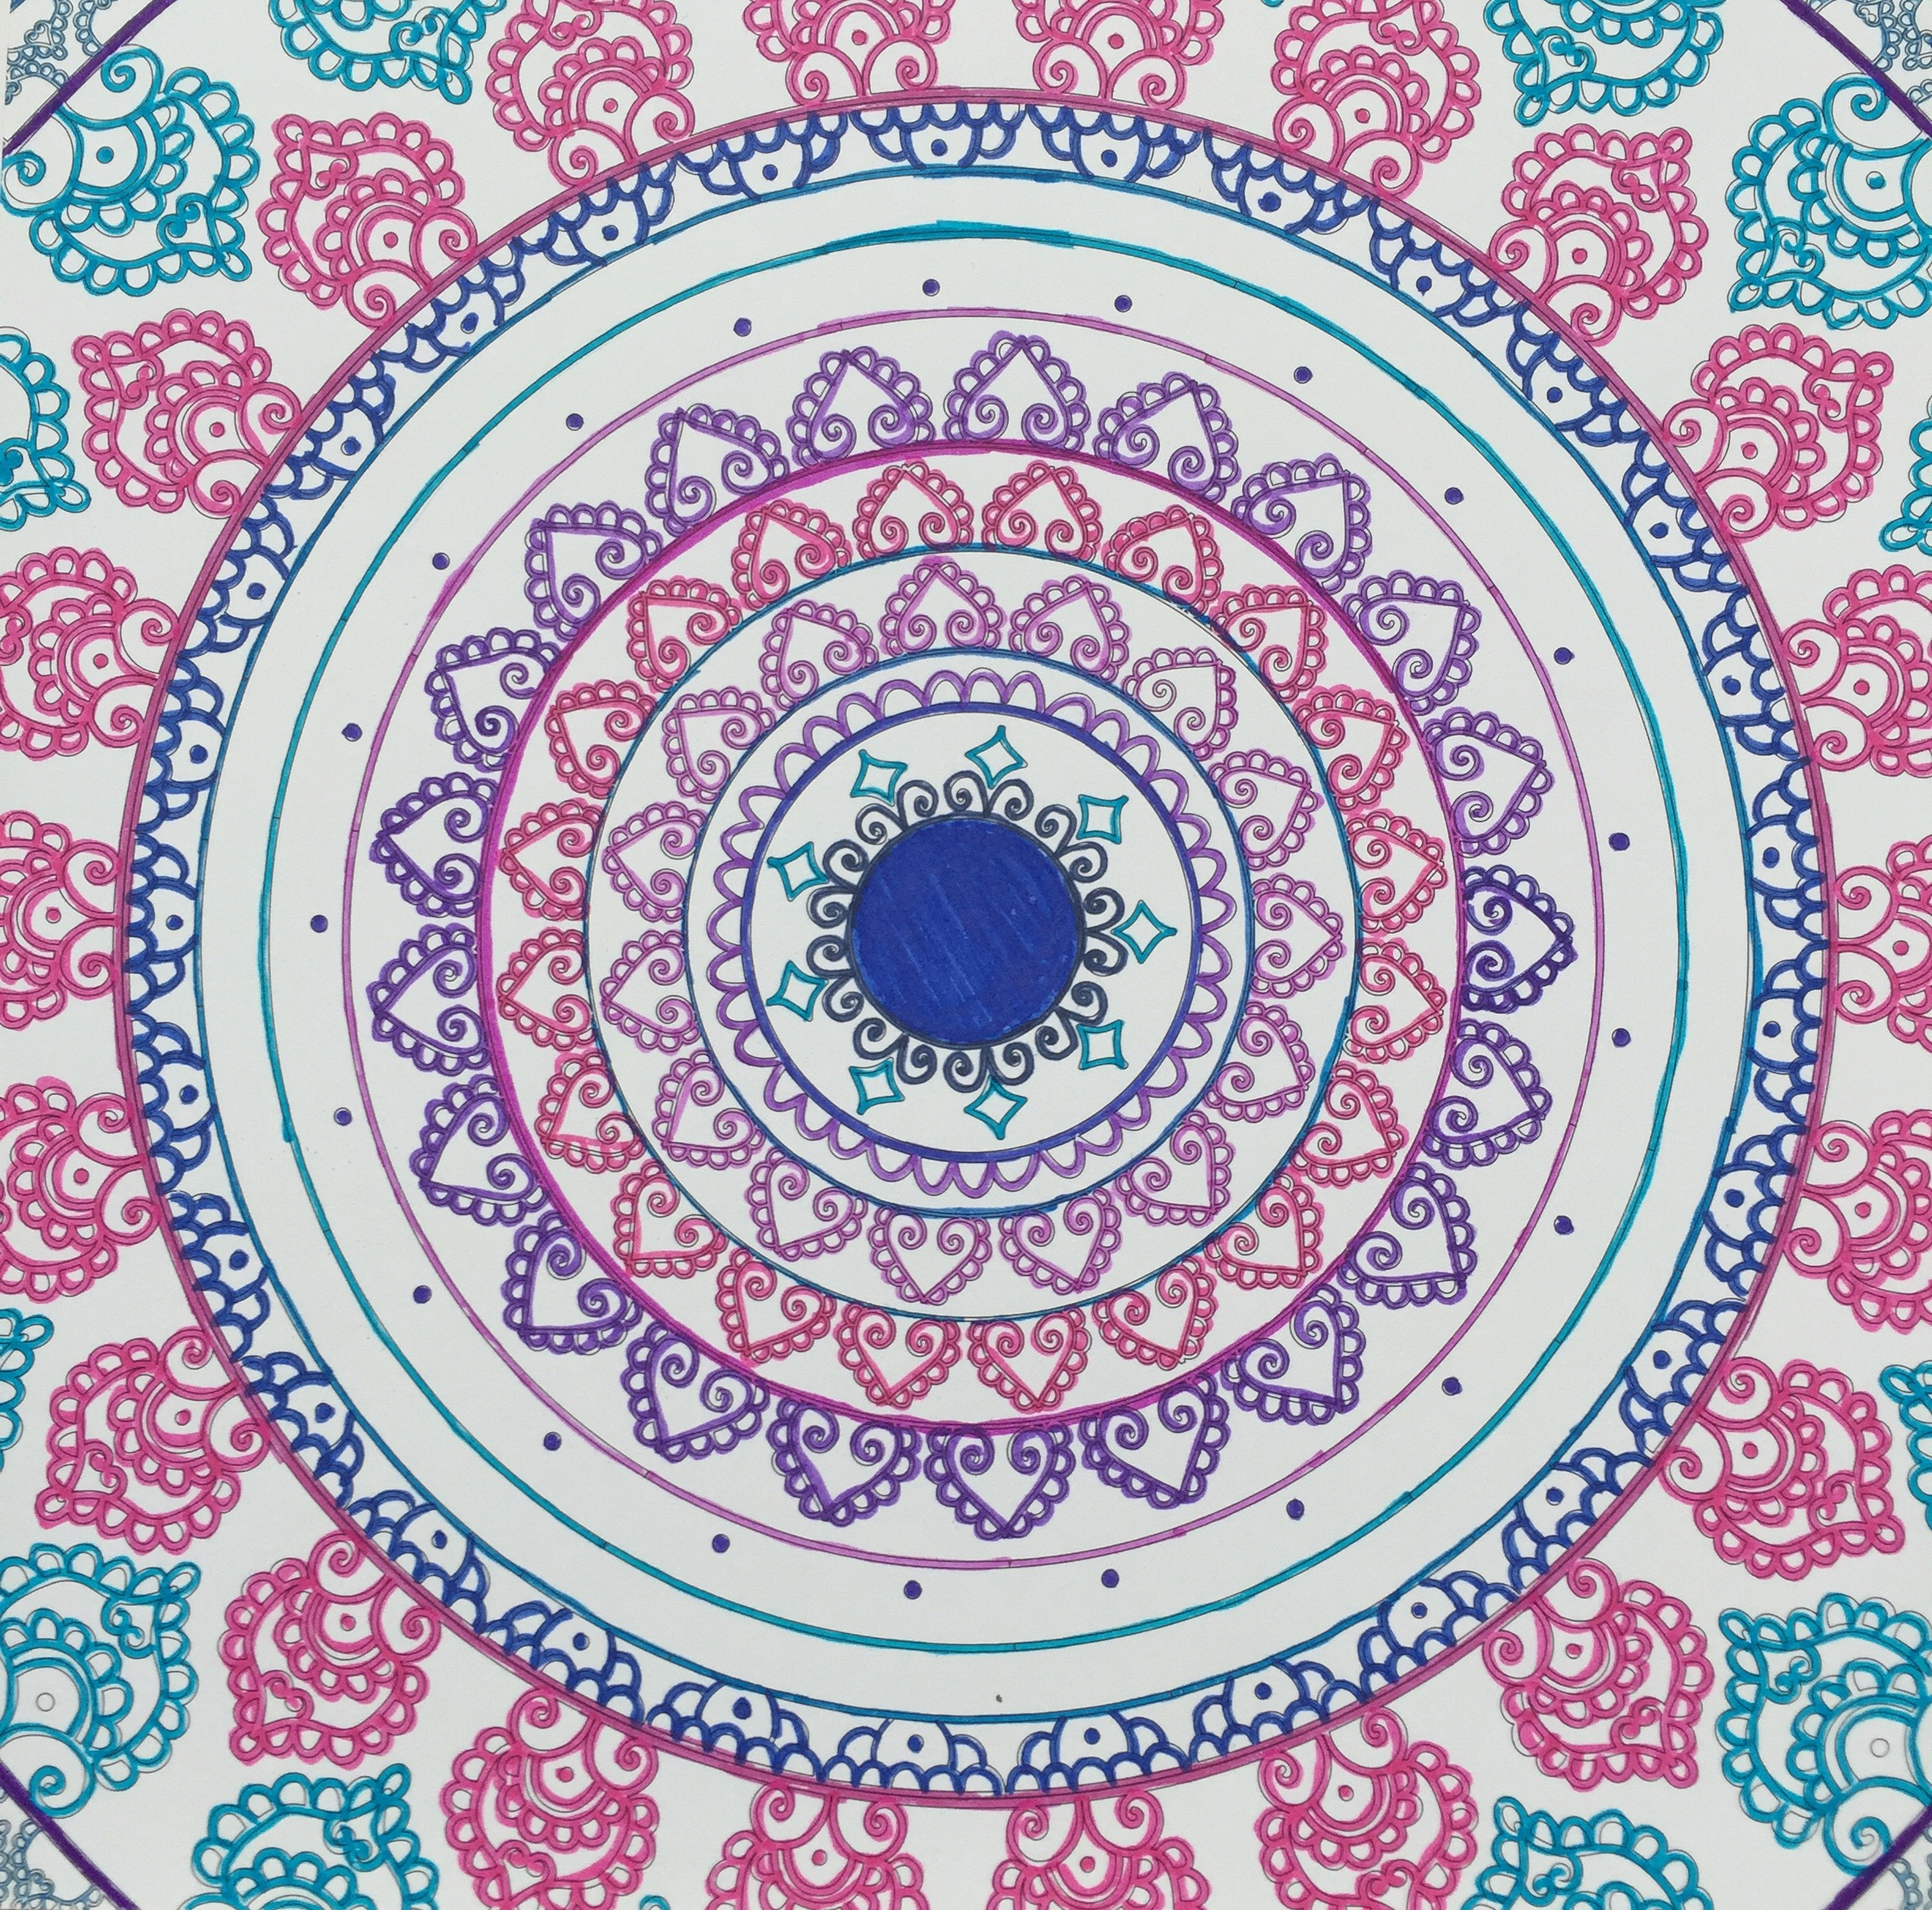 The Nature Colouring Book Has Pretty Flowery Designs With Cute Animals And Bollywood Wonderfully Intricate Indian Ranging